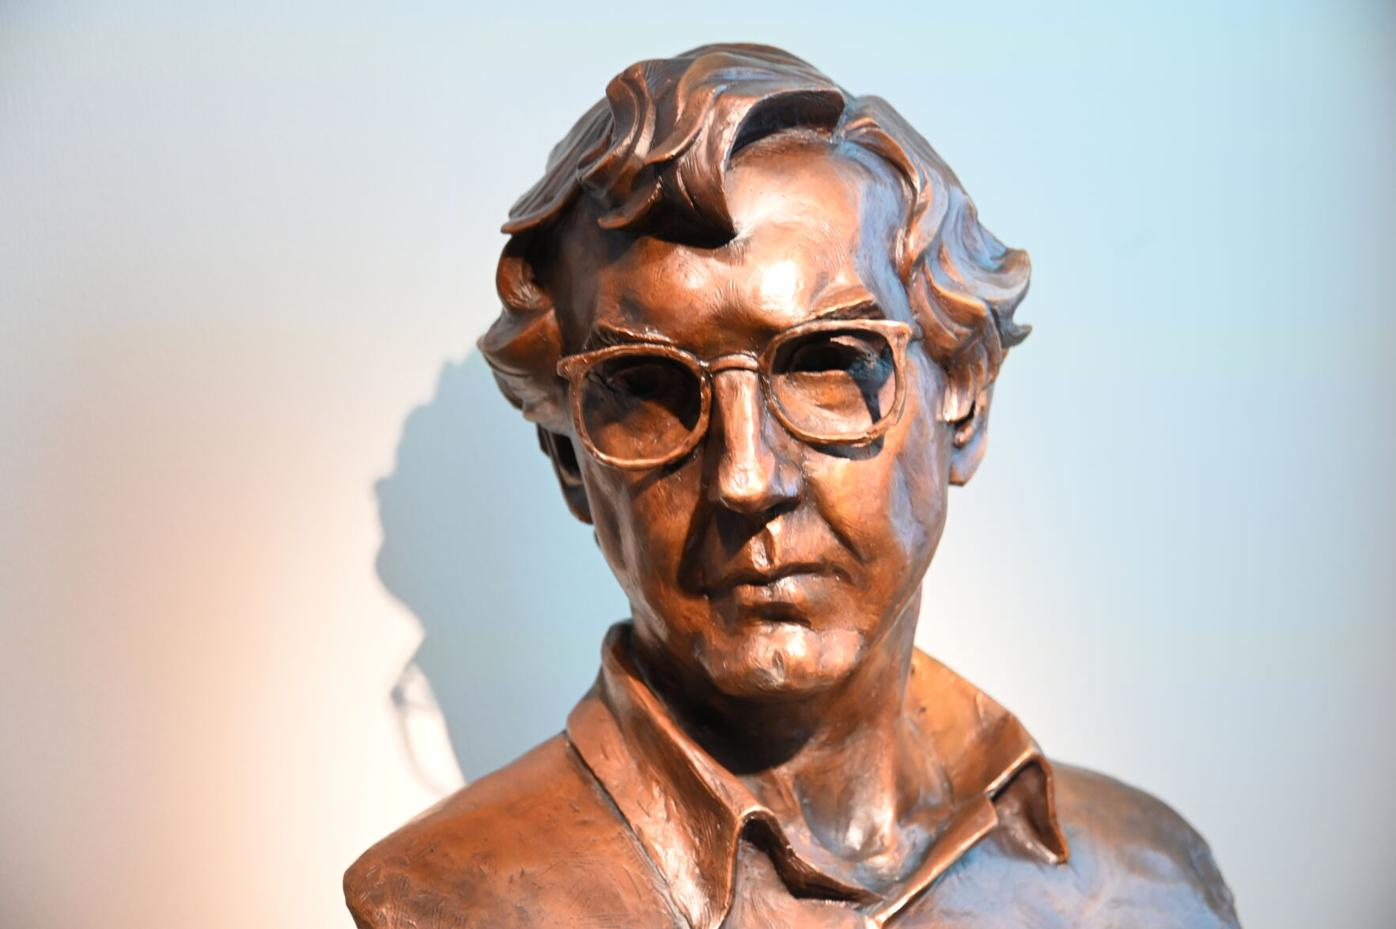 Larry McMurtry sculpture